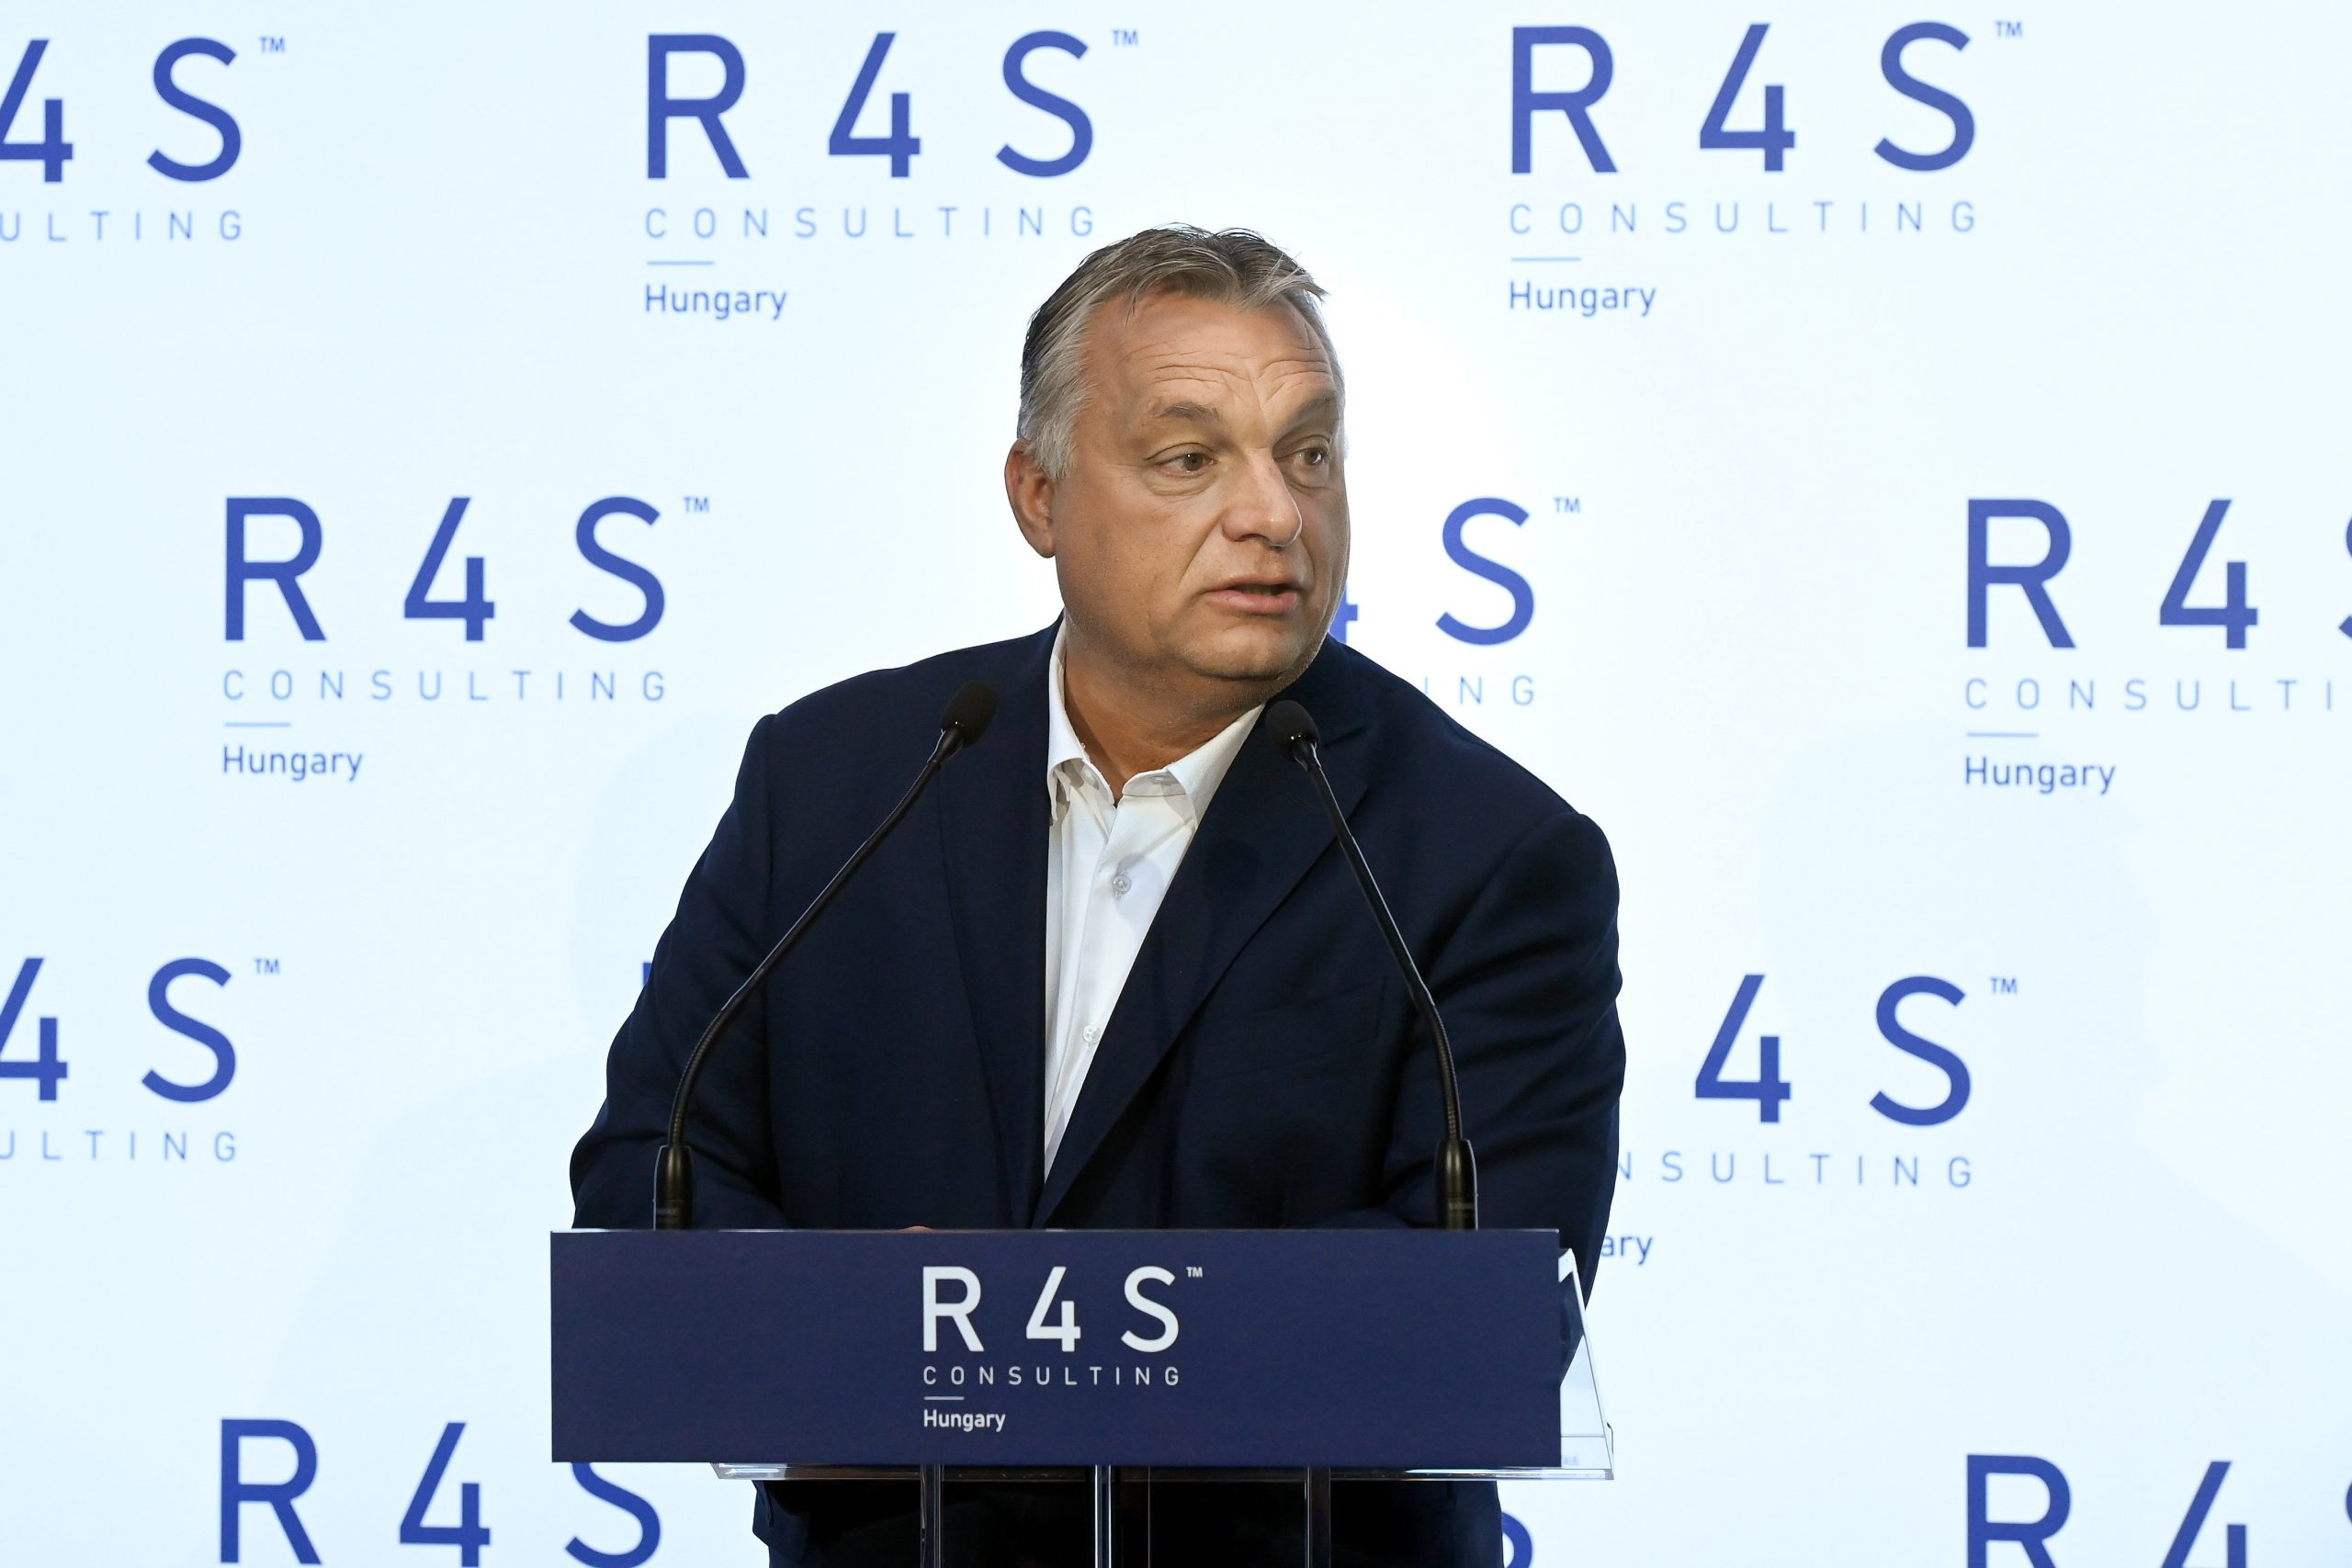 Orbán: V4 Slated to be 'Influential' in European Politics if They Grow as a Bloc